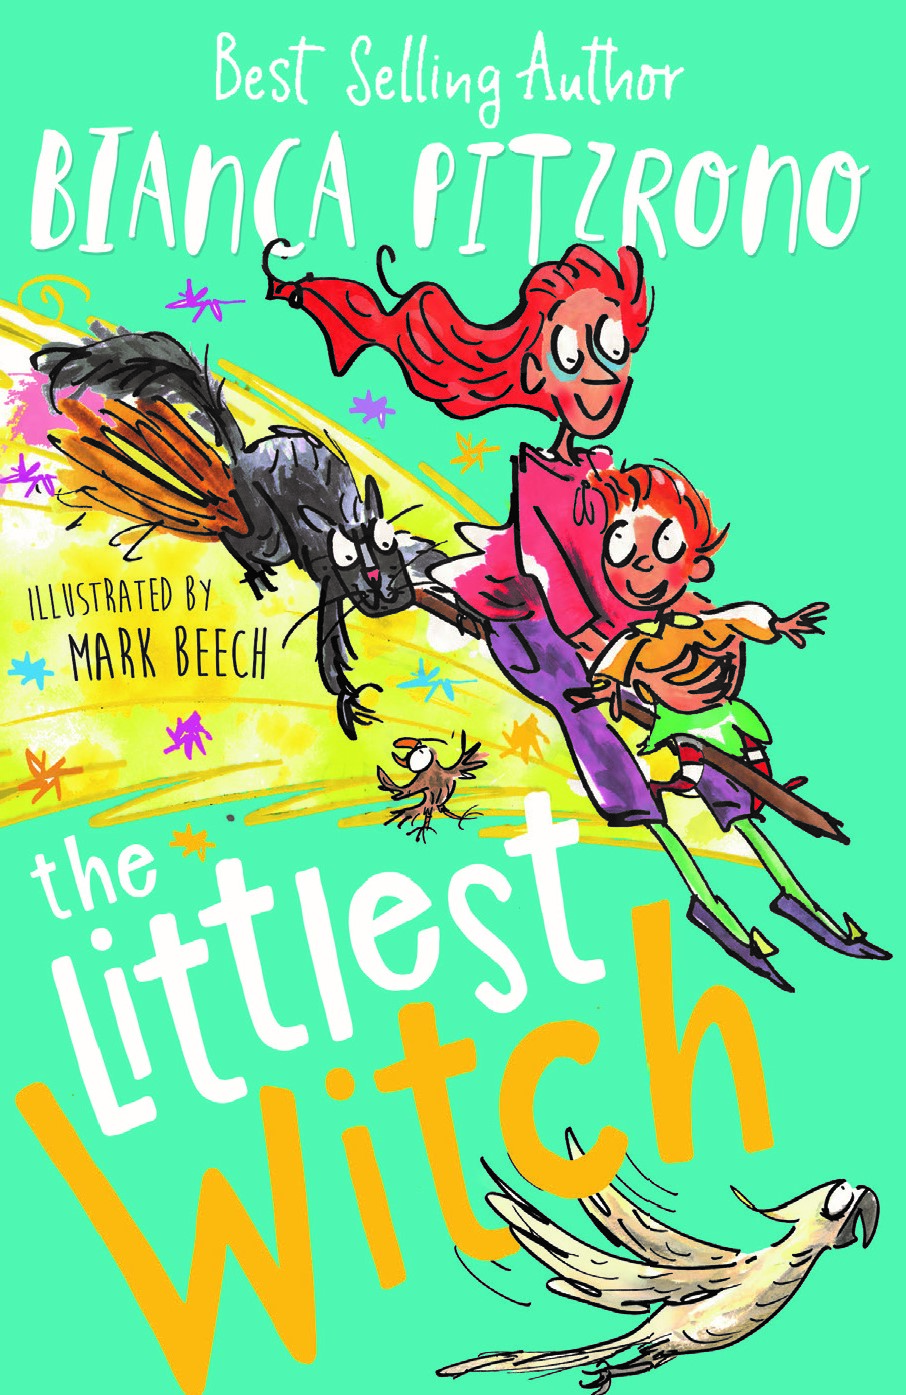 Littlest Witch cover combo colour.jpg